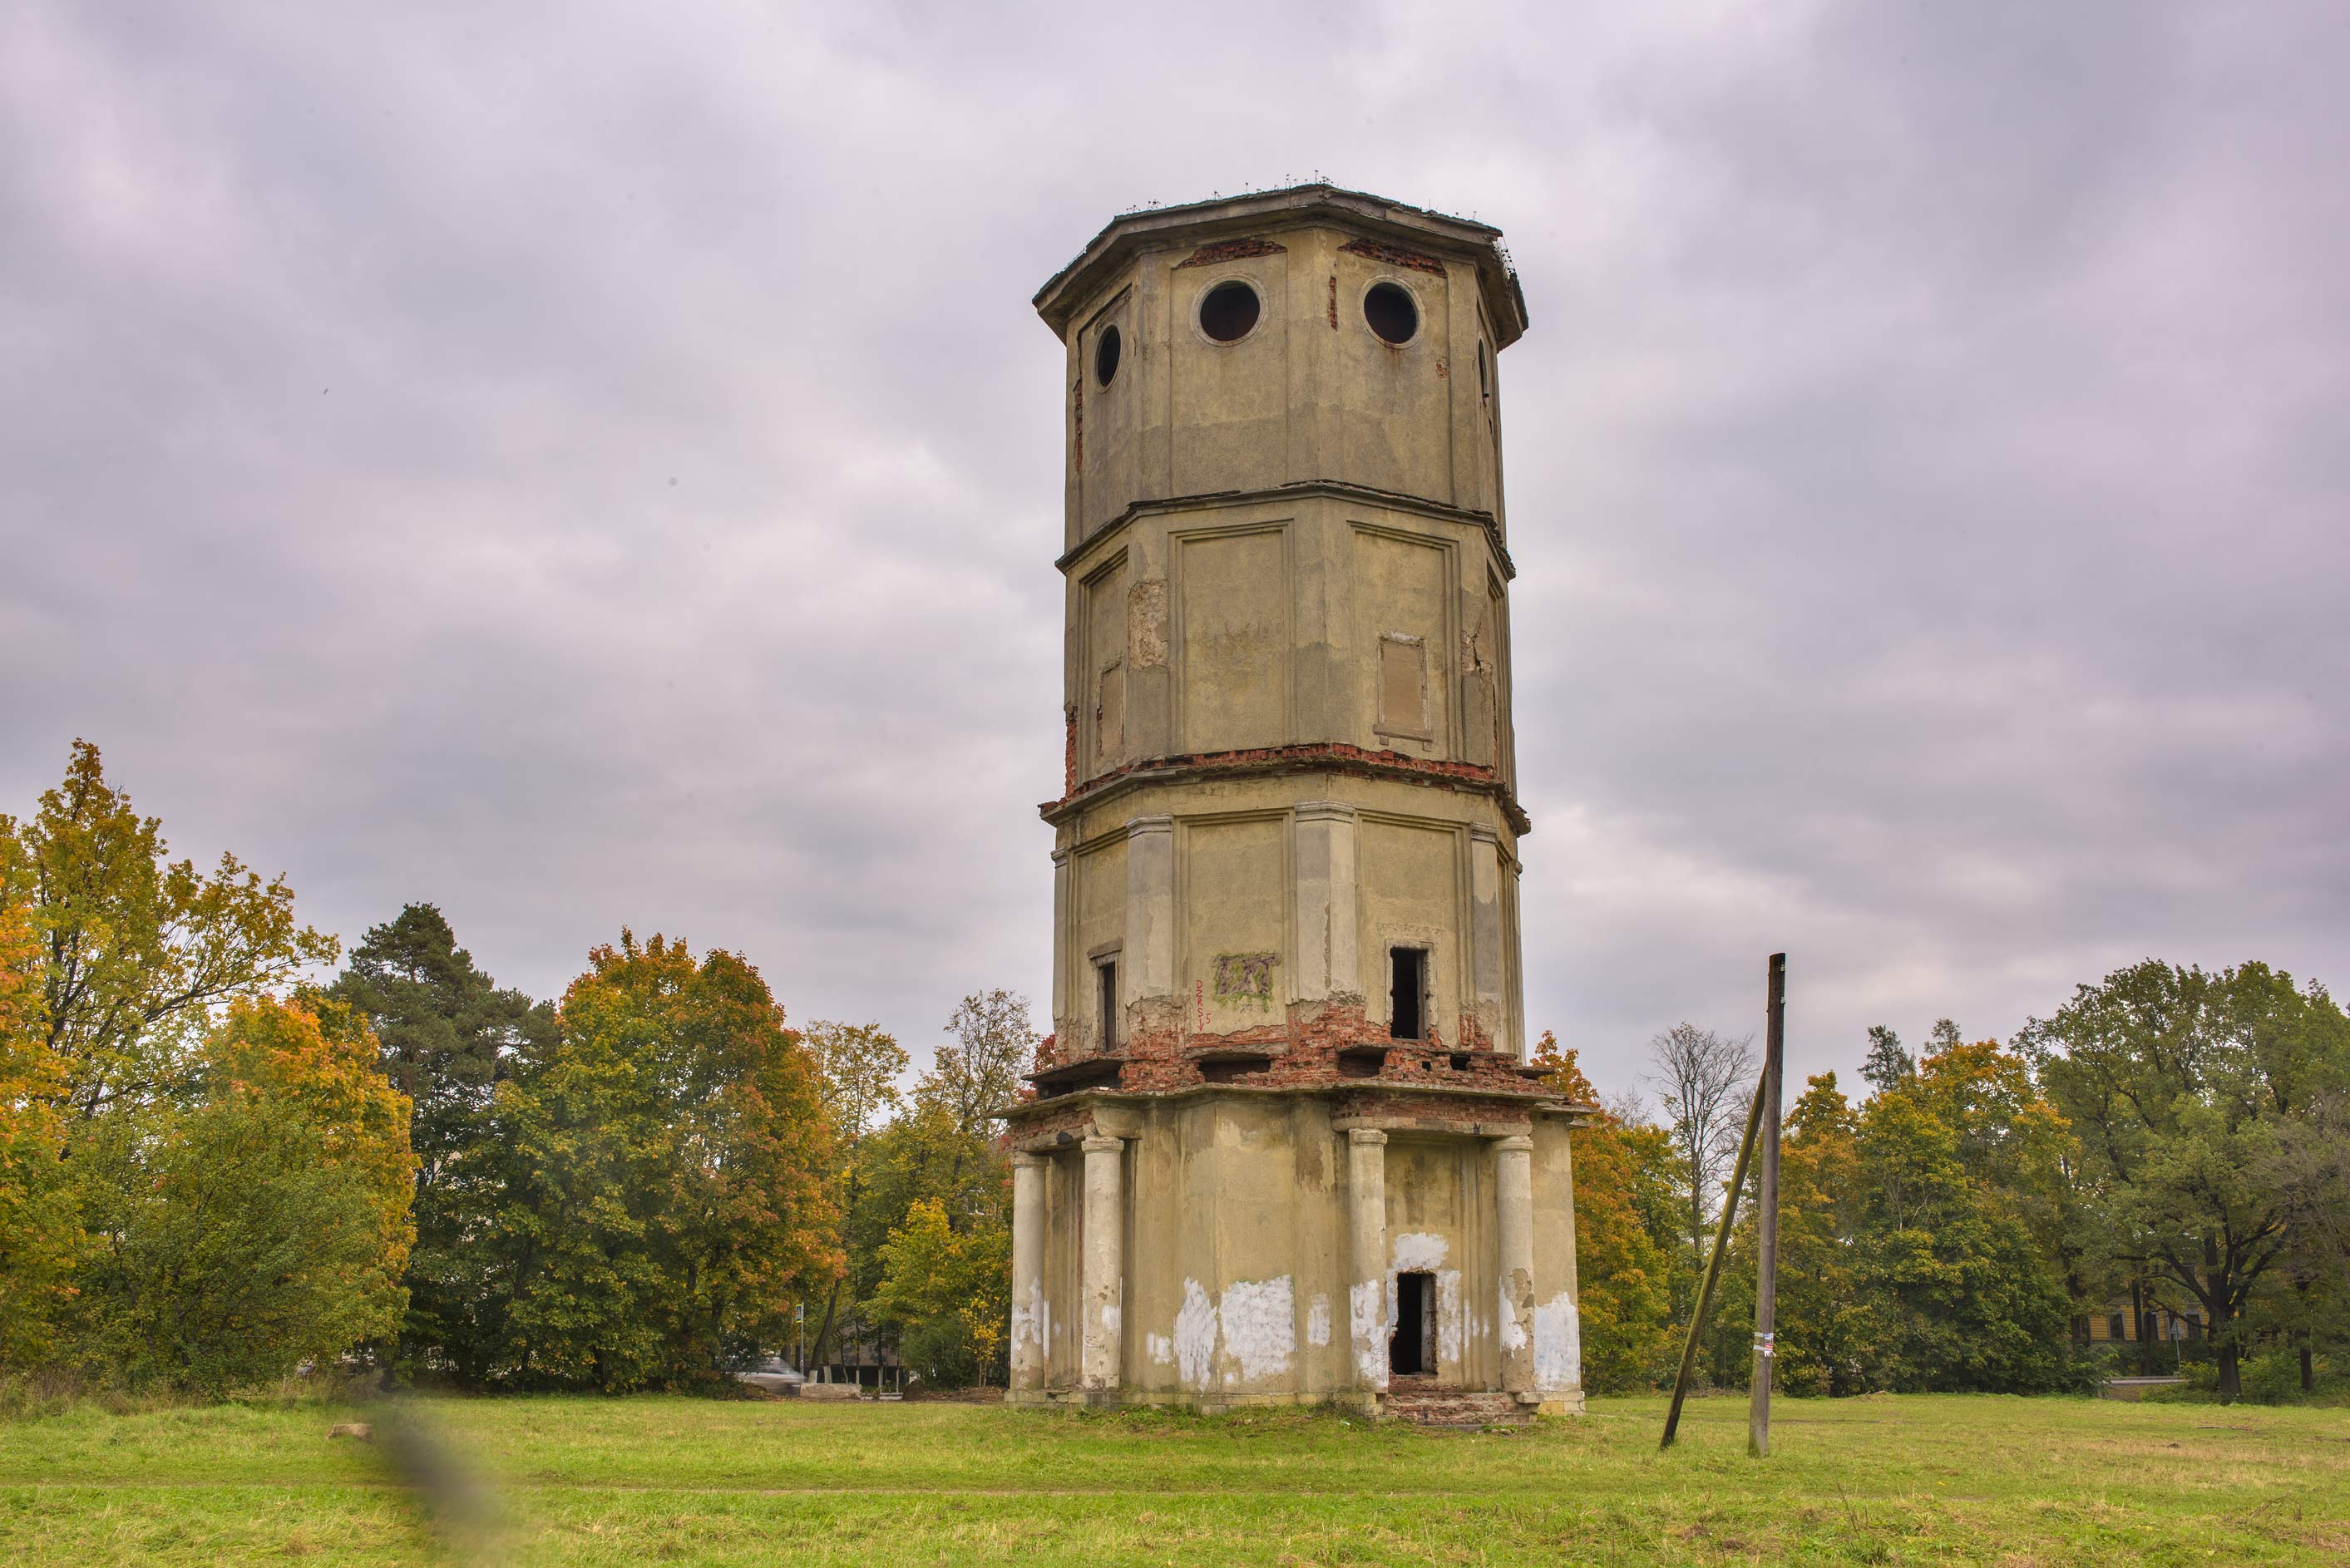 Old water tower near Filkino Lake. Gatchina, a suburb of St.Petersburg, Russia